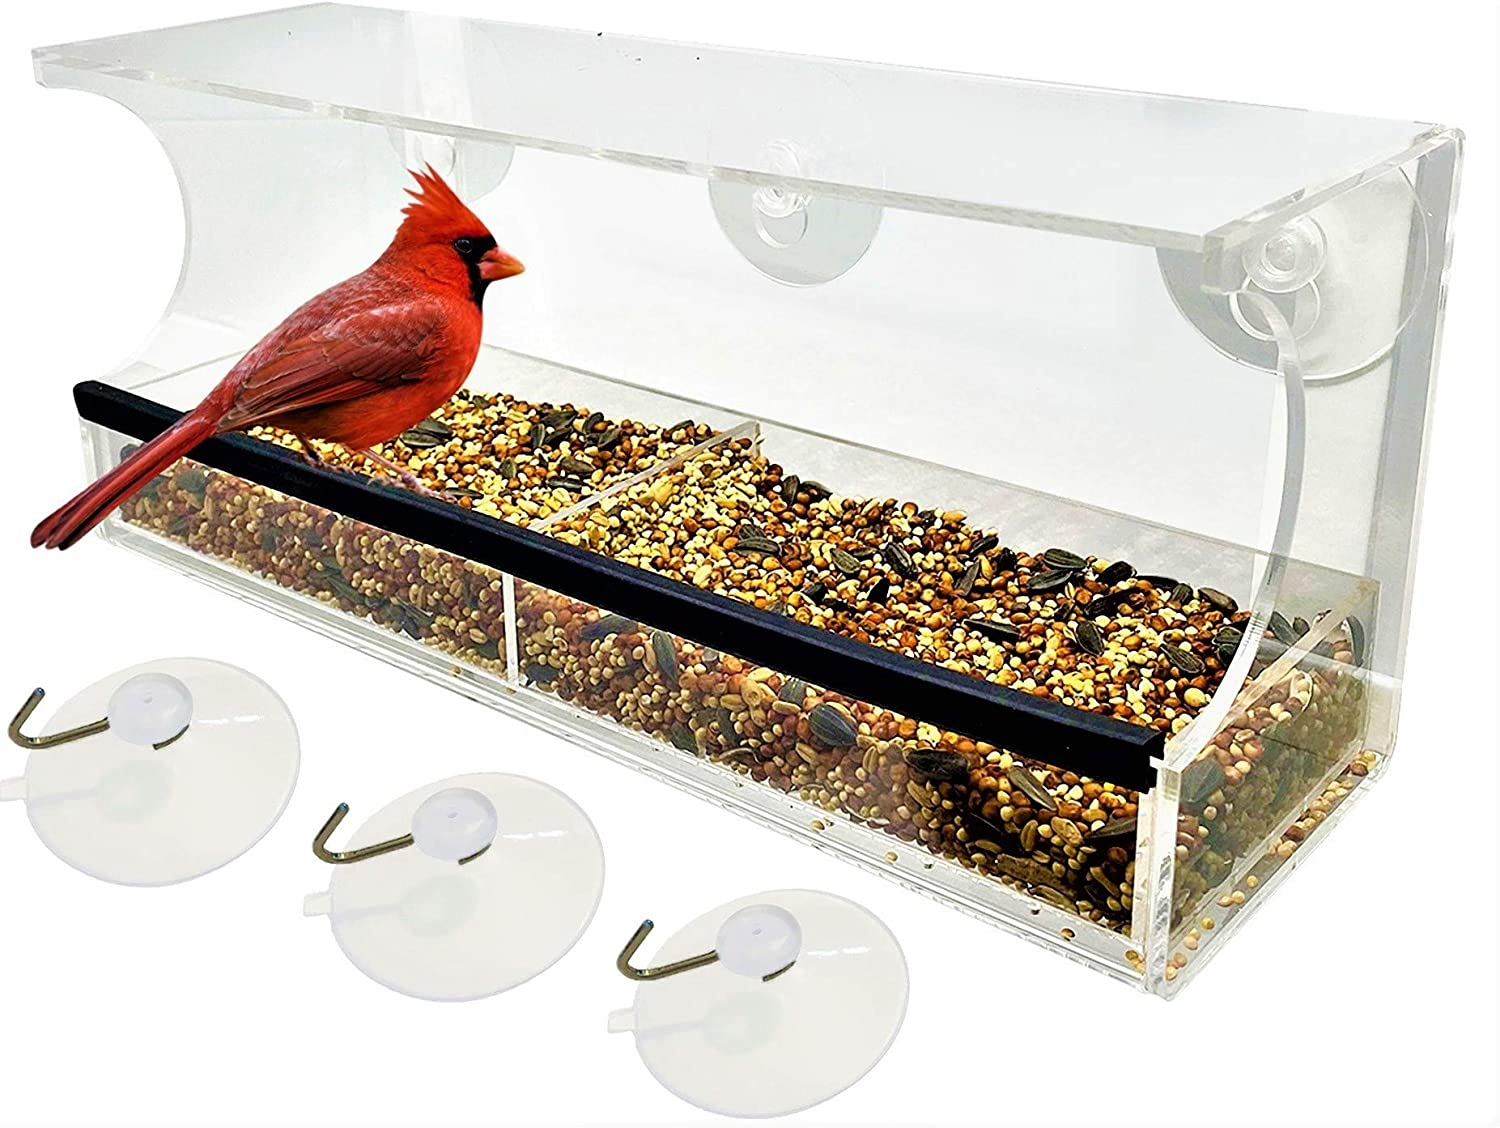 Crazy Frog Studio - Premium Window Wild Bird Feeder with Transparent Covered Feed Area, Drainage Holes, Extra-Strong Suction Cups, Removable Food Tray, Comfortable Rubber Perch